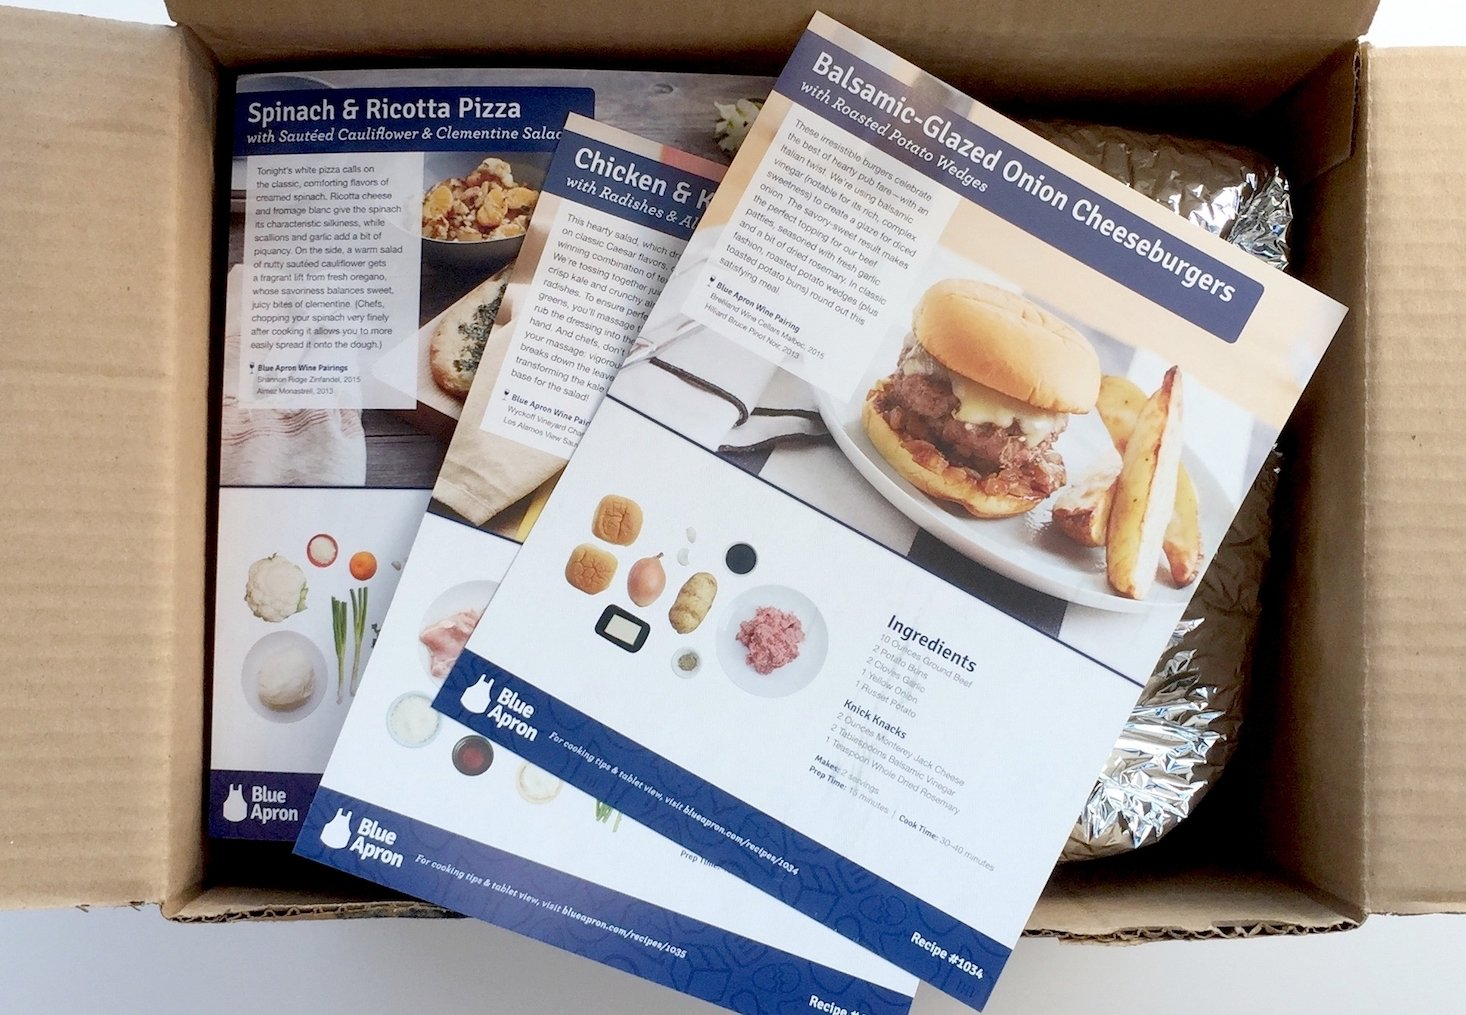 Blue apron discount coupon